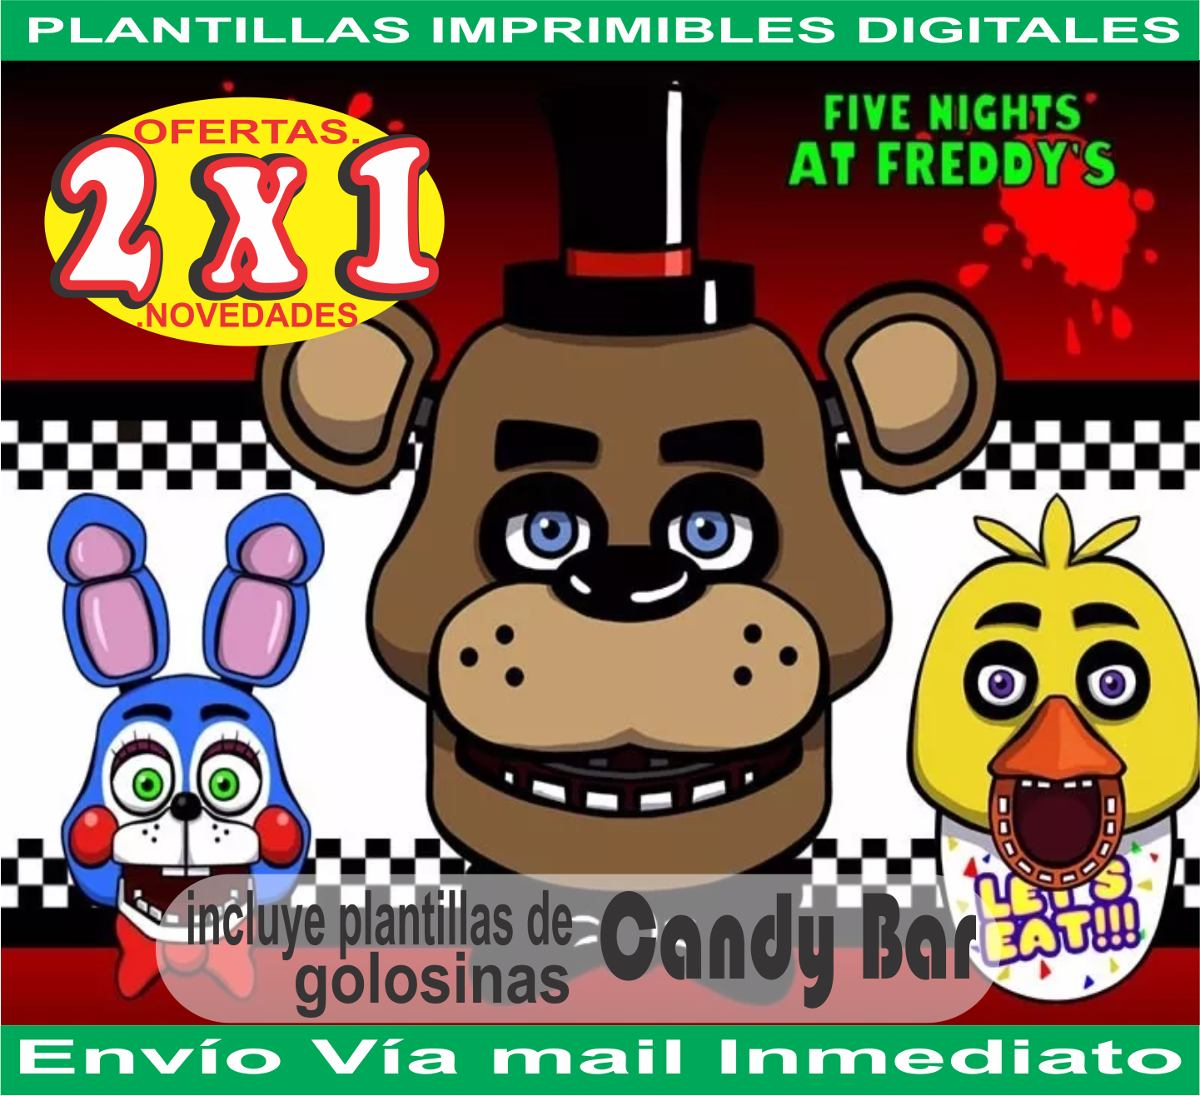 Kit Imprimible Five Nights At Freddy\'s Tarjetas Candybar 2x1 - $ 27 ...